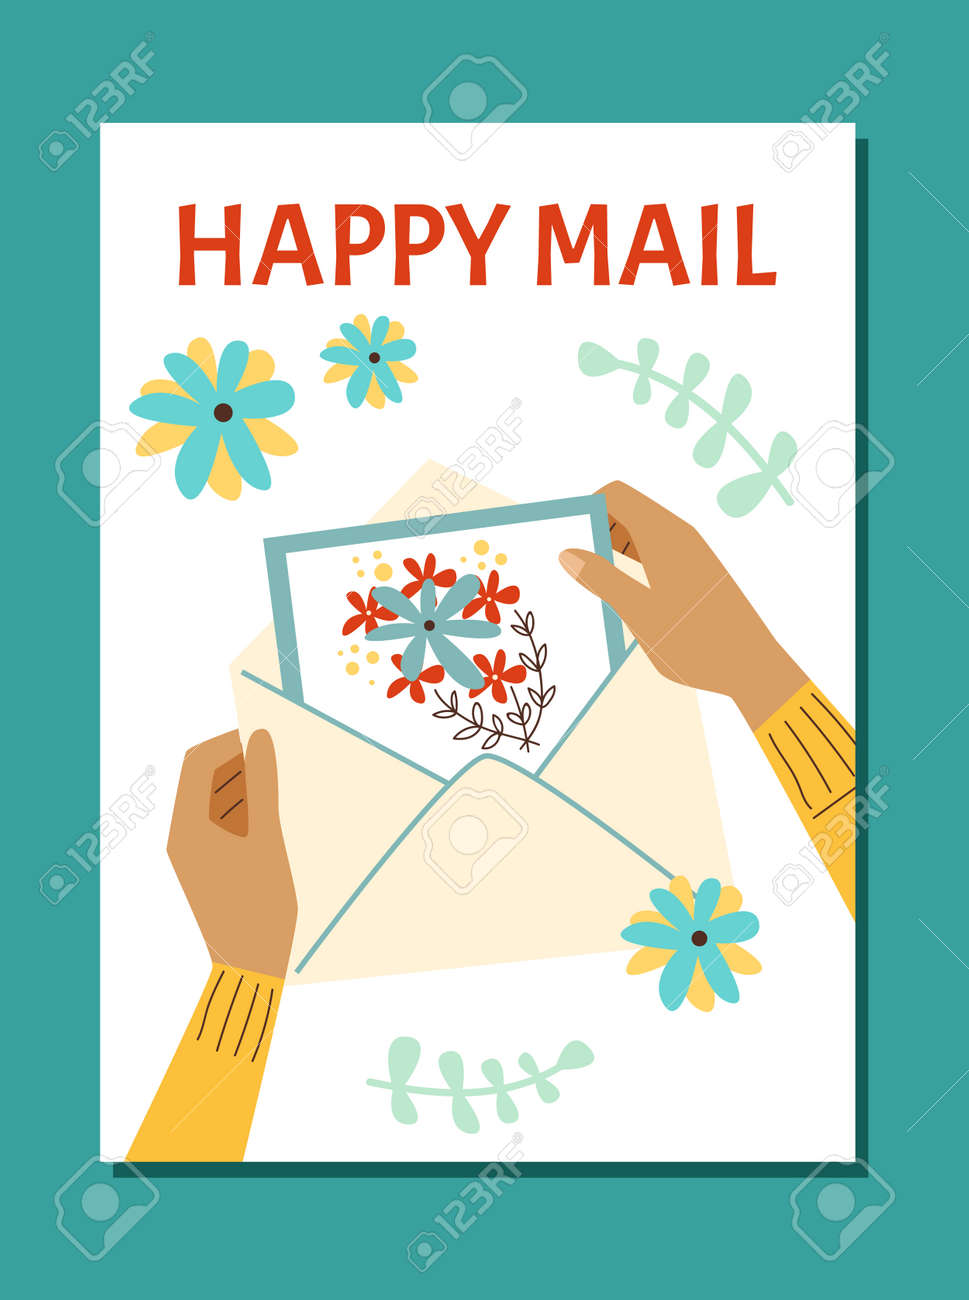 Vector poster with female hands holding greeting holiday card in mail envelope - 173358197